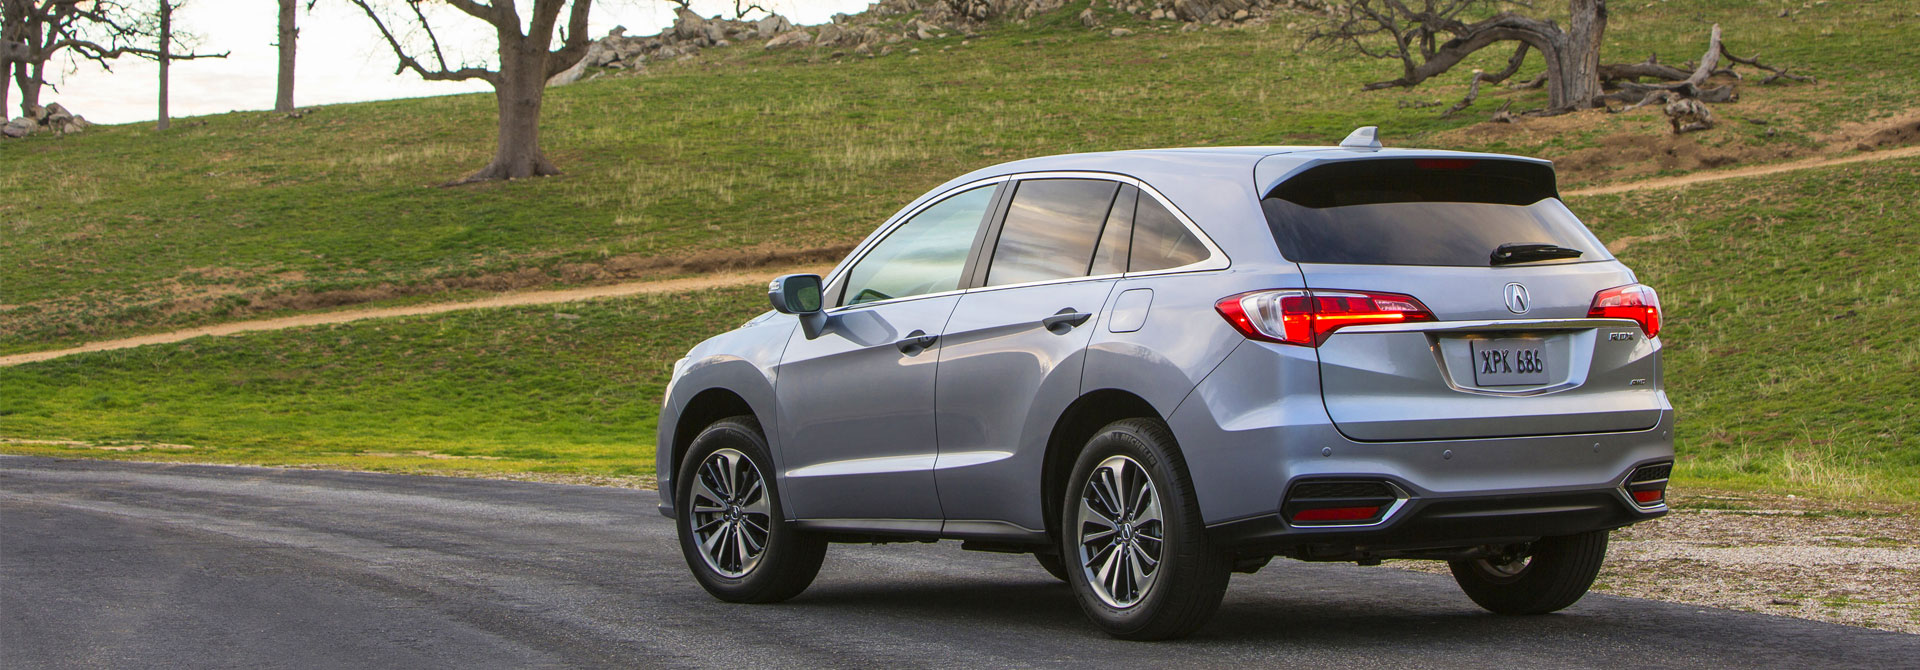 acura rdx 2017 new vehicle for sale atlantic acura. Black Bedroom Furniture Sets. Home Design Ideas